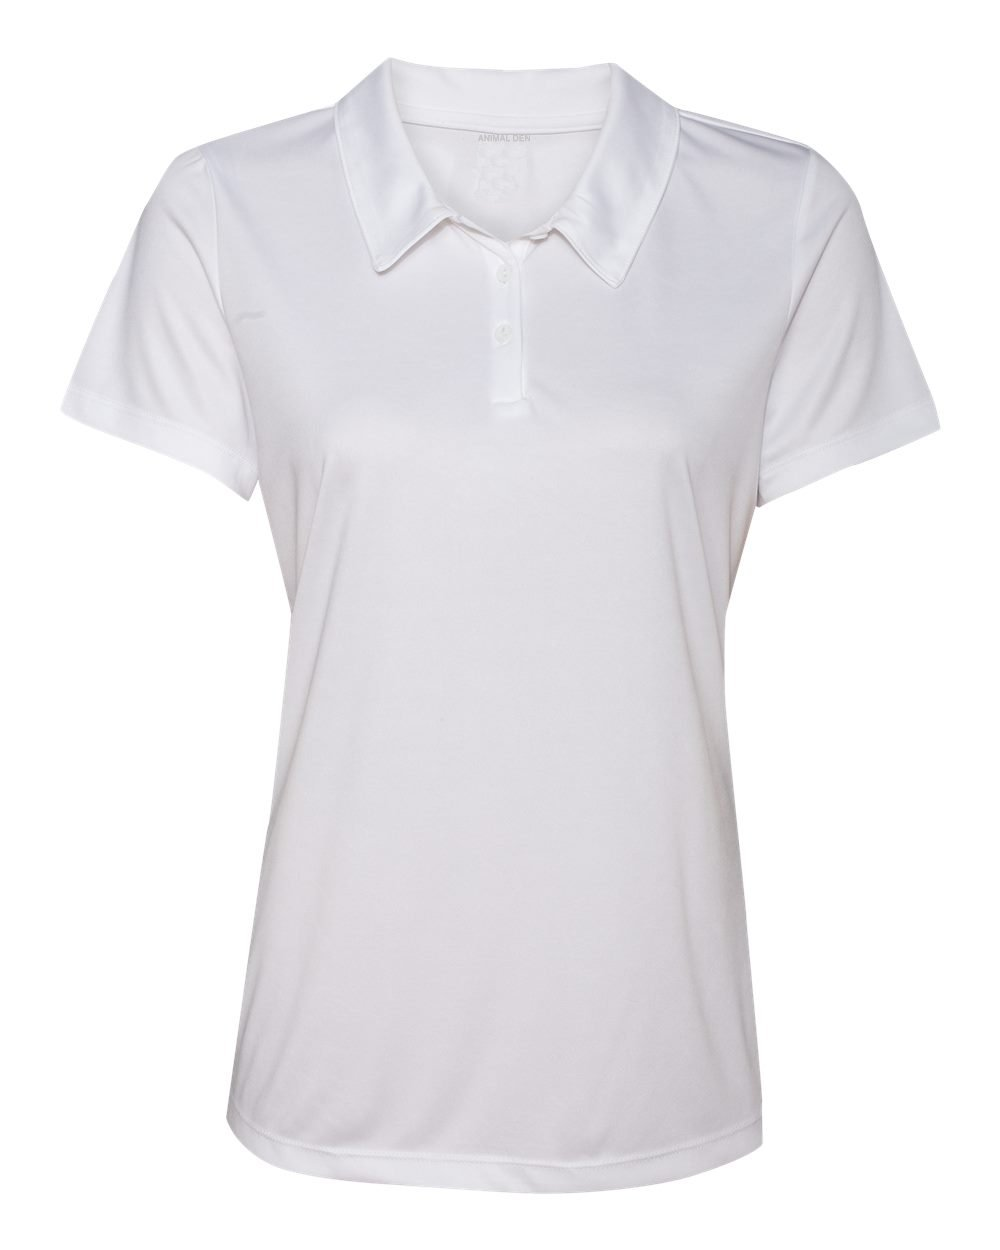 Women's Dry-Fit Golf Polo Shirts 3-Button Golf Polo's in 20 Colors XS-3XL Shirt WHITE-3XL by Animal Den